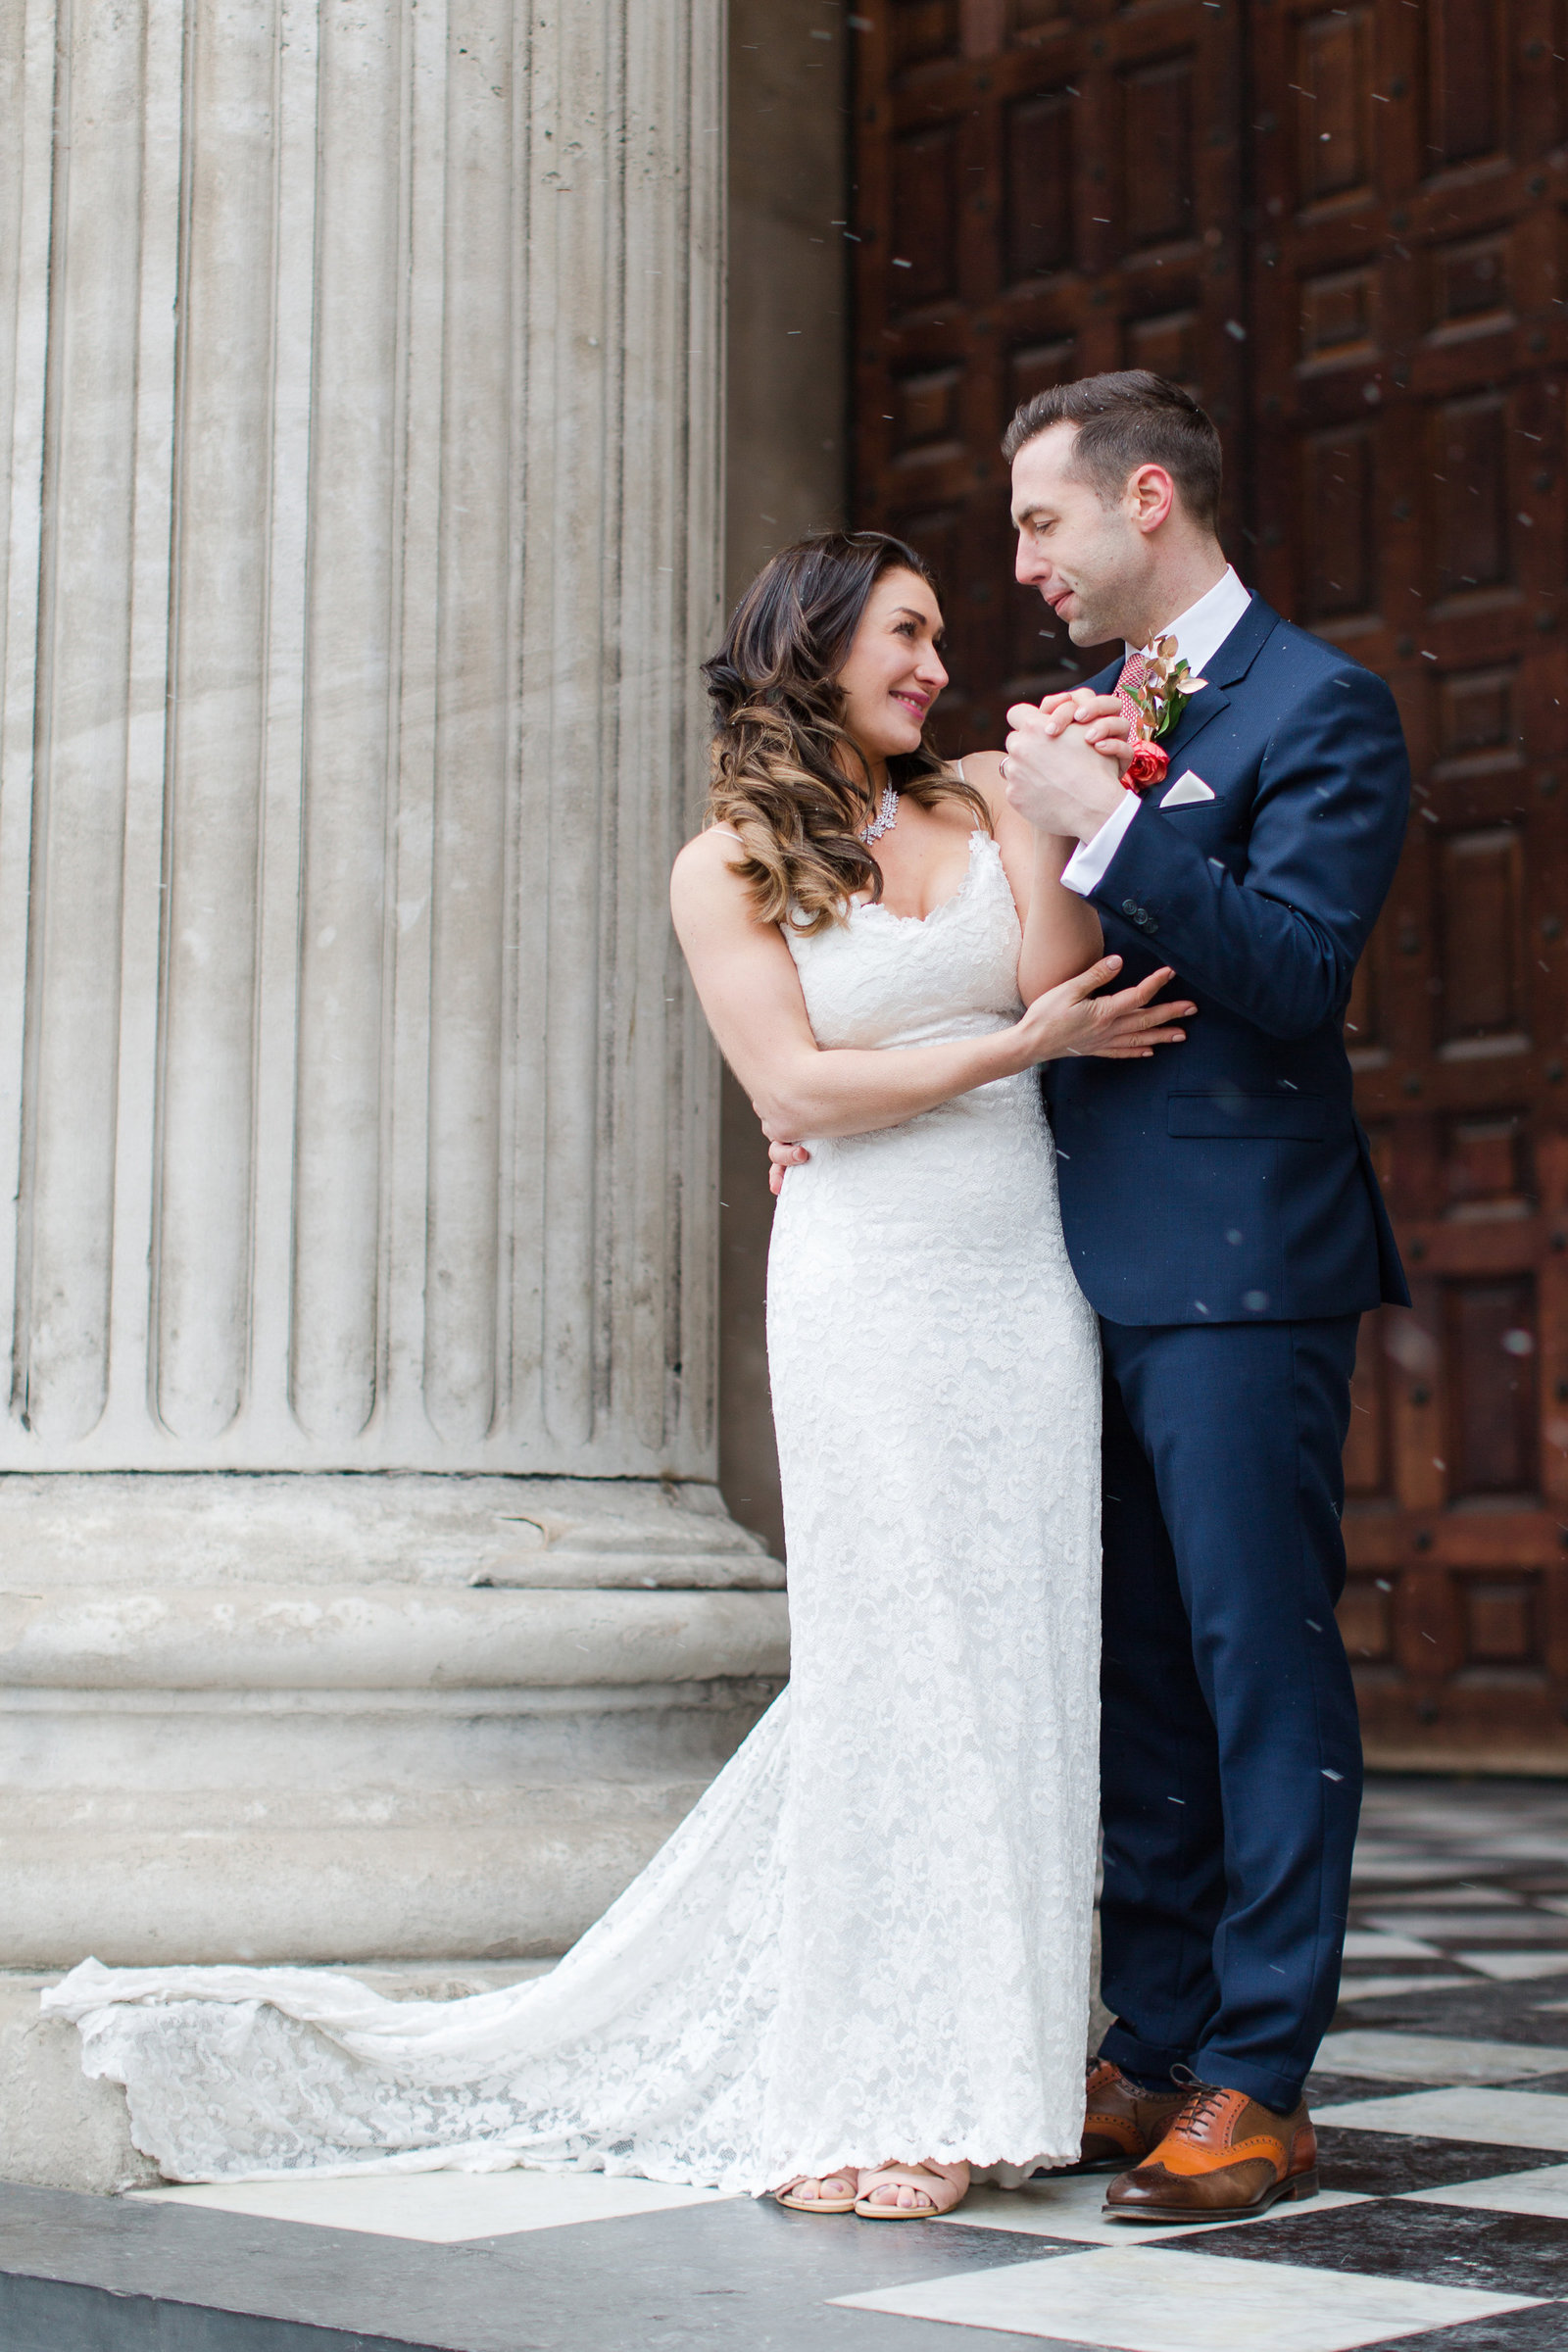 Bride and groom hold hands and stare into each others eyes intimately at this snowy winter wedding at St Paul's cathedral in London